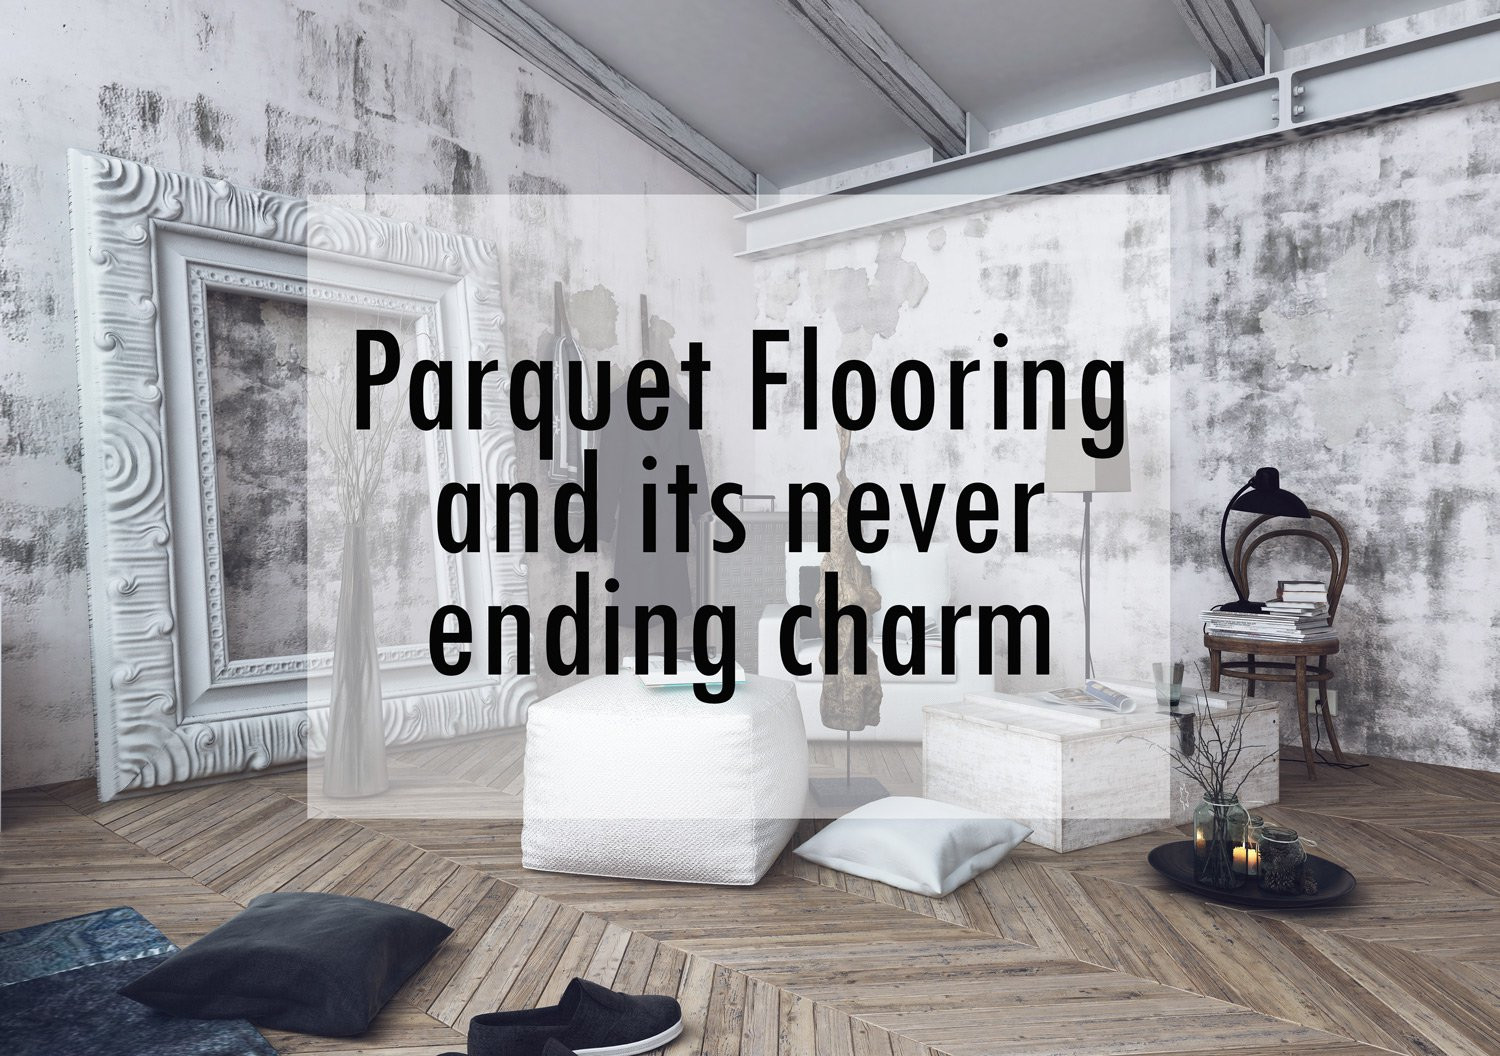 Different Types Of Hardwood Floors In House Of About Parquet Flooring Types and Installation Dengarden In 13317391